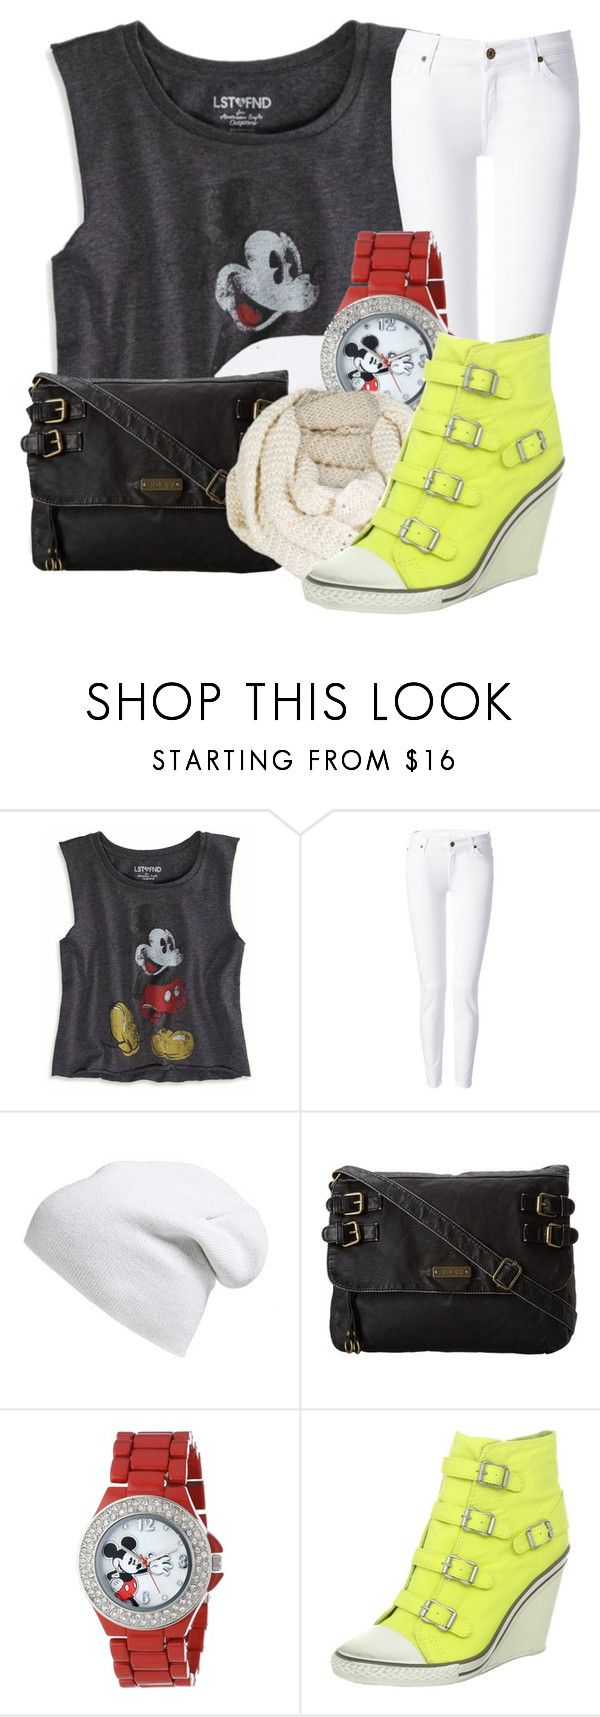 """""""Mickey Mouse Inspired Outfit"""" by god-girl ❤ liked on Polyvore featuring American Eagle Outfitters, 7 For All Mankind, Phase 3, Roxy, Disney, Ash, yellow, sneakers, Wedge and scarf"""